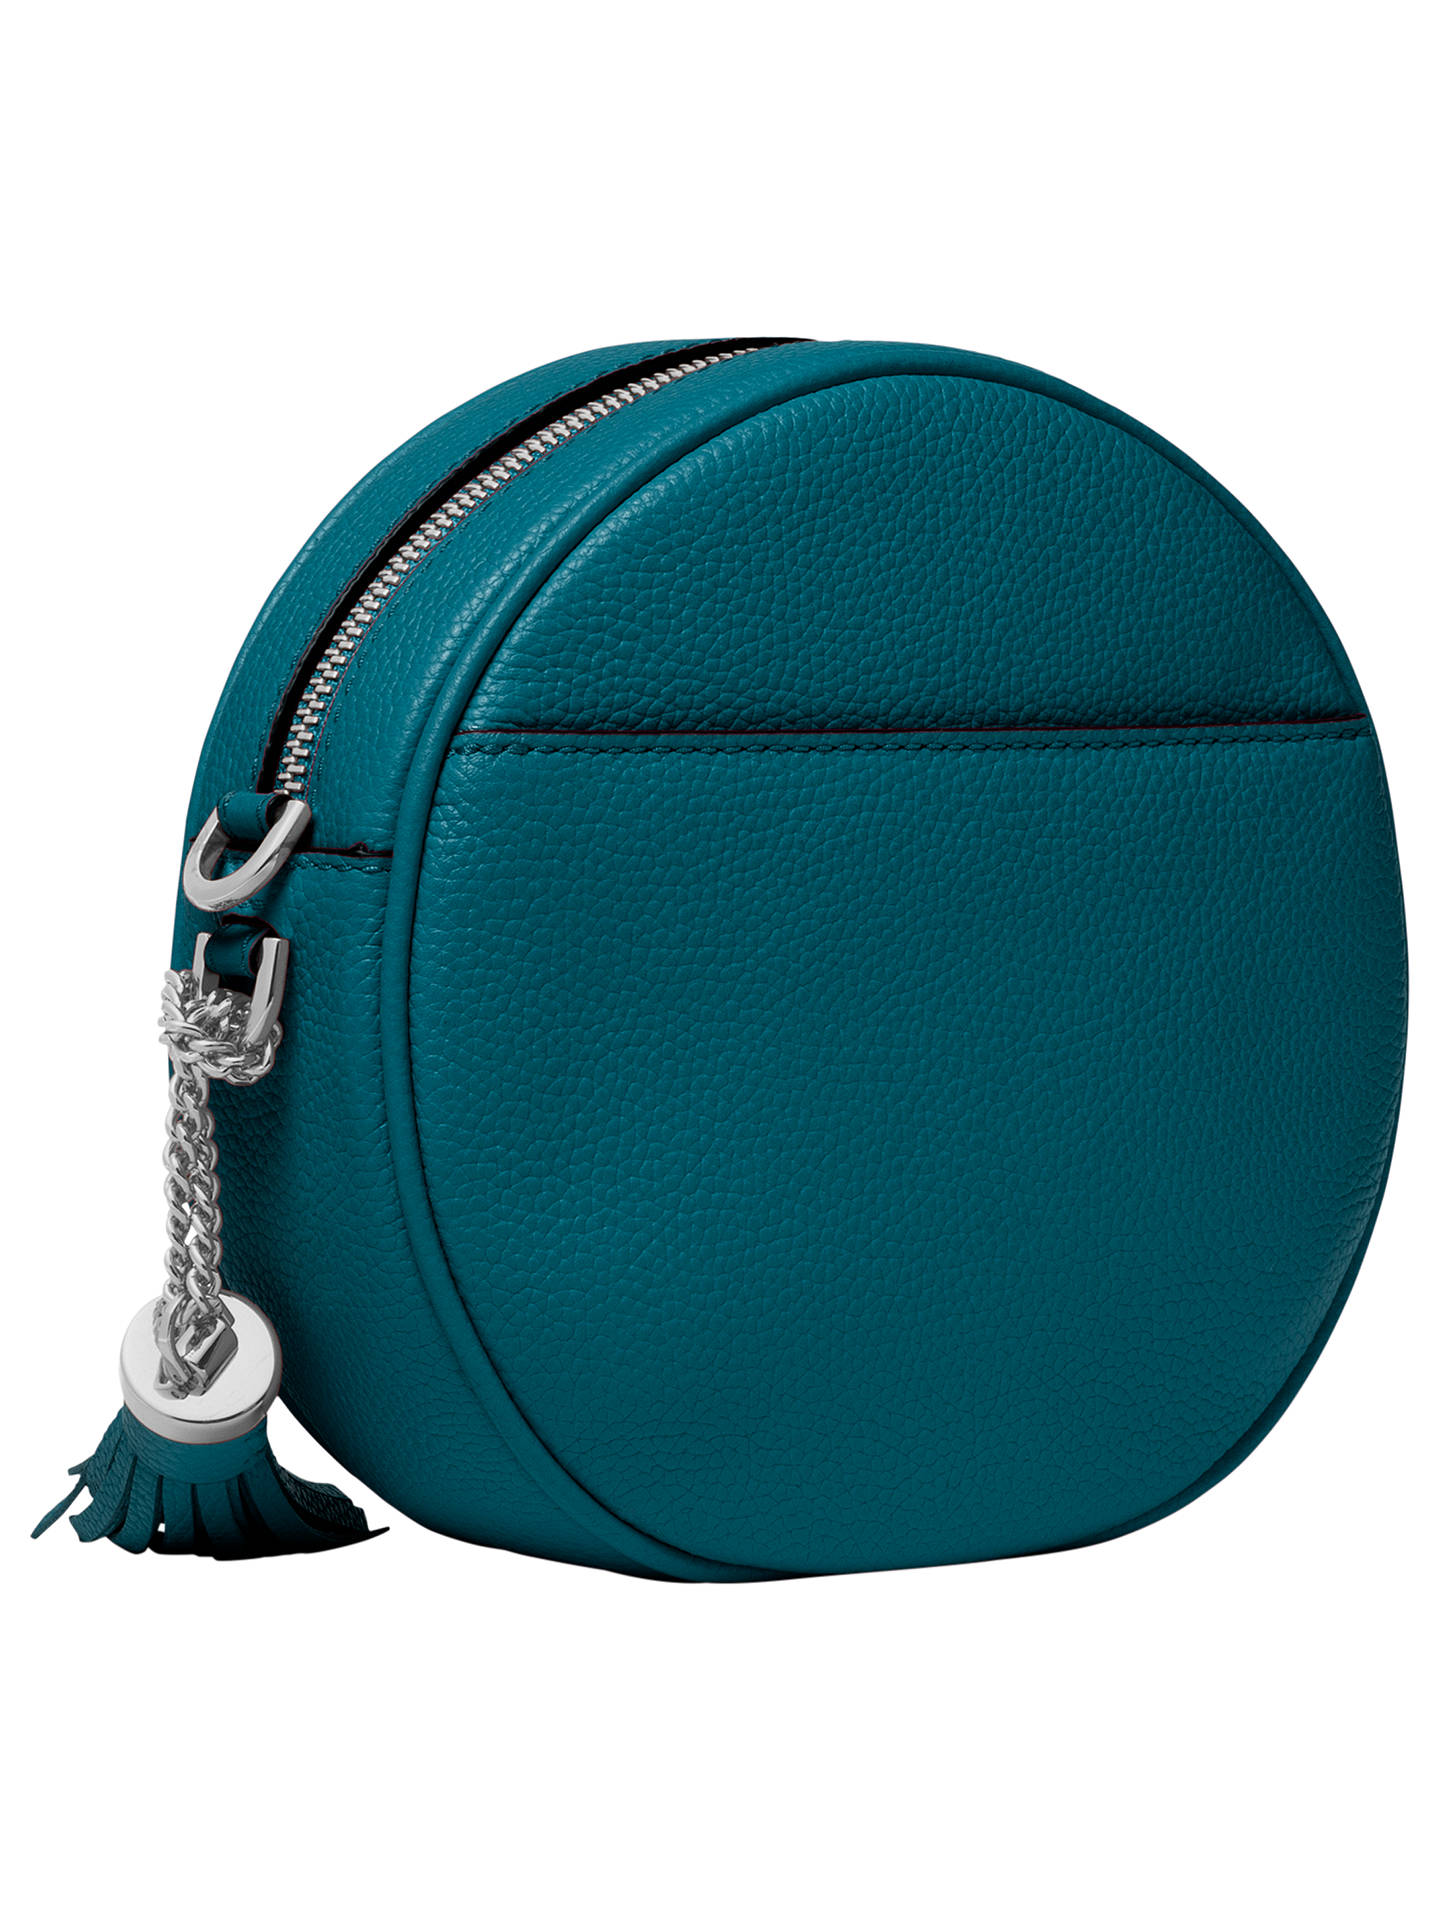 Michael Kors Can Leather Cross Body Bag Luxe Teal Online At Johnlewis